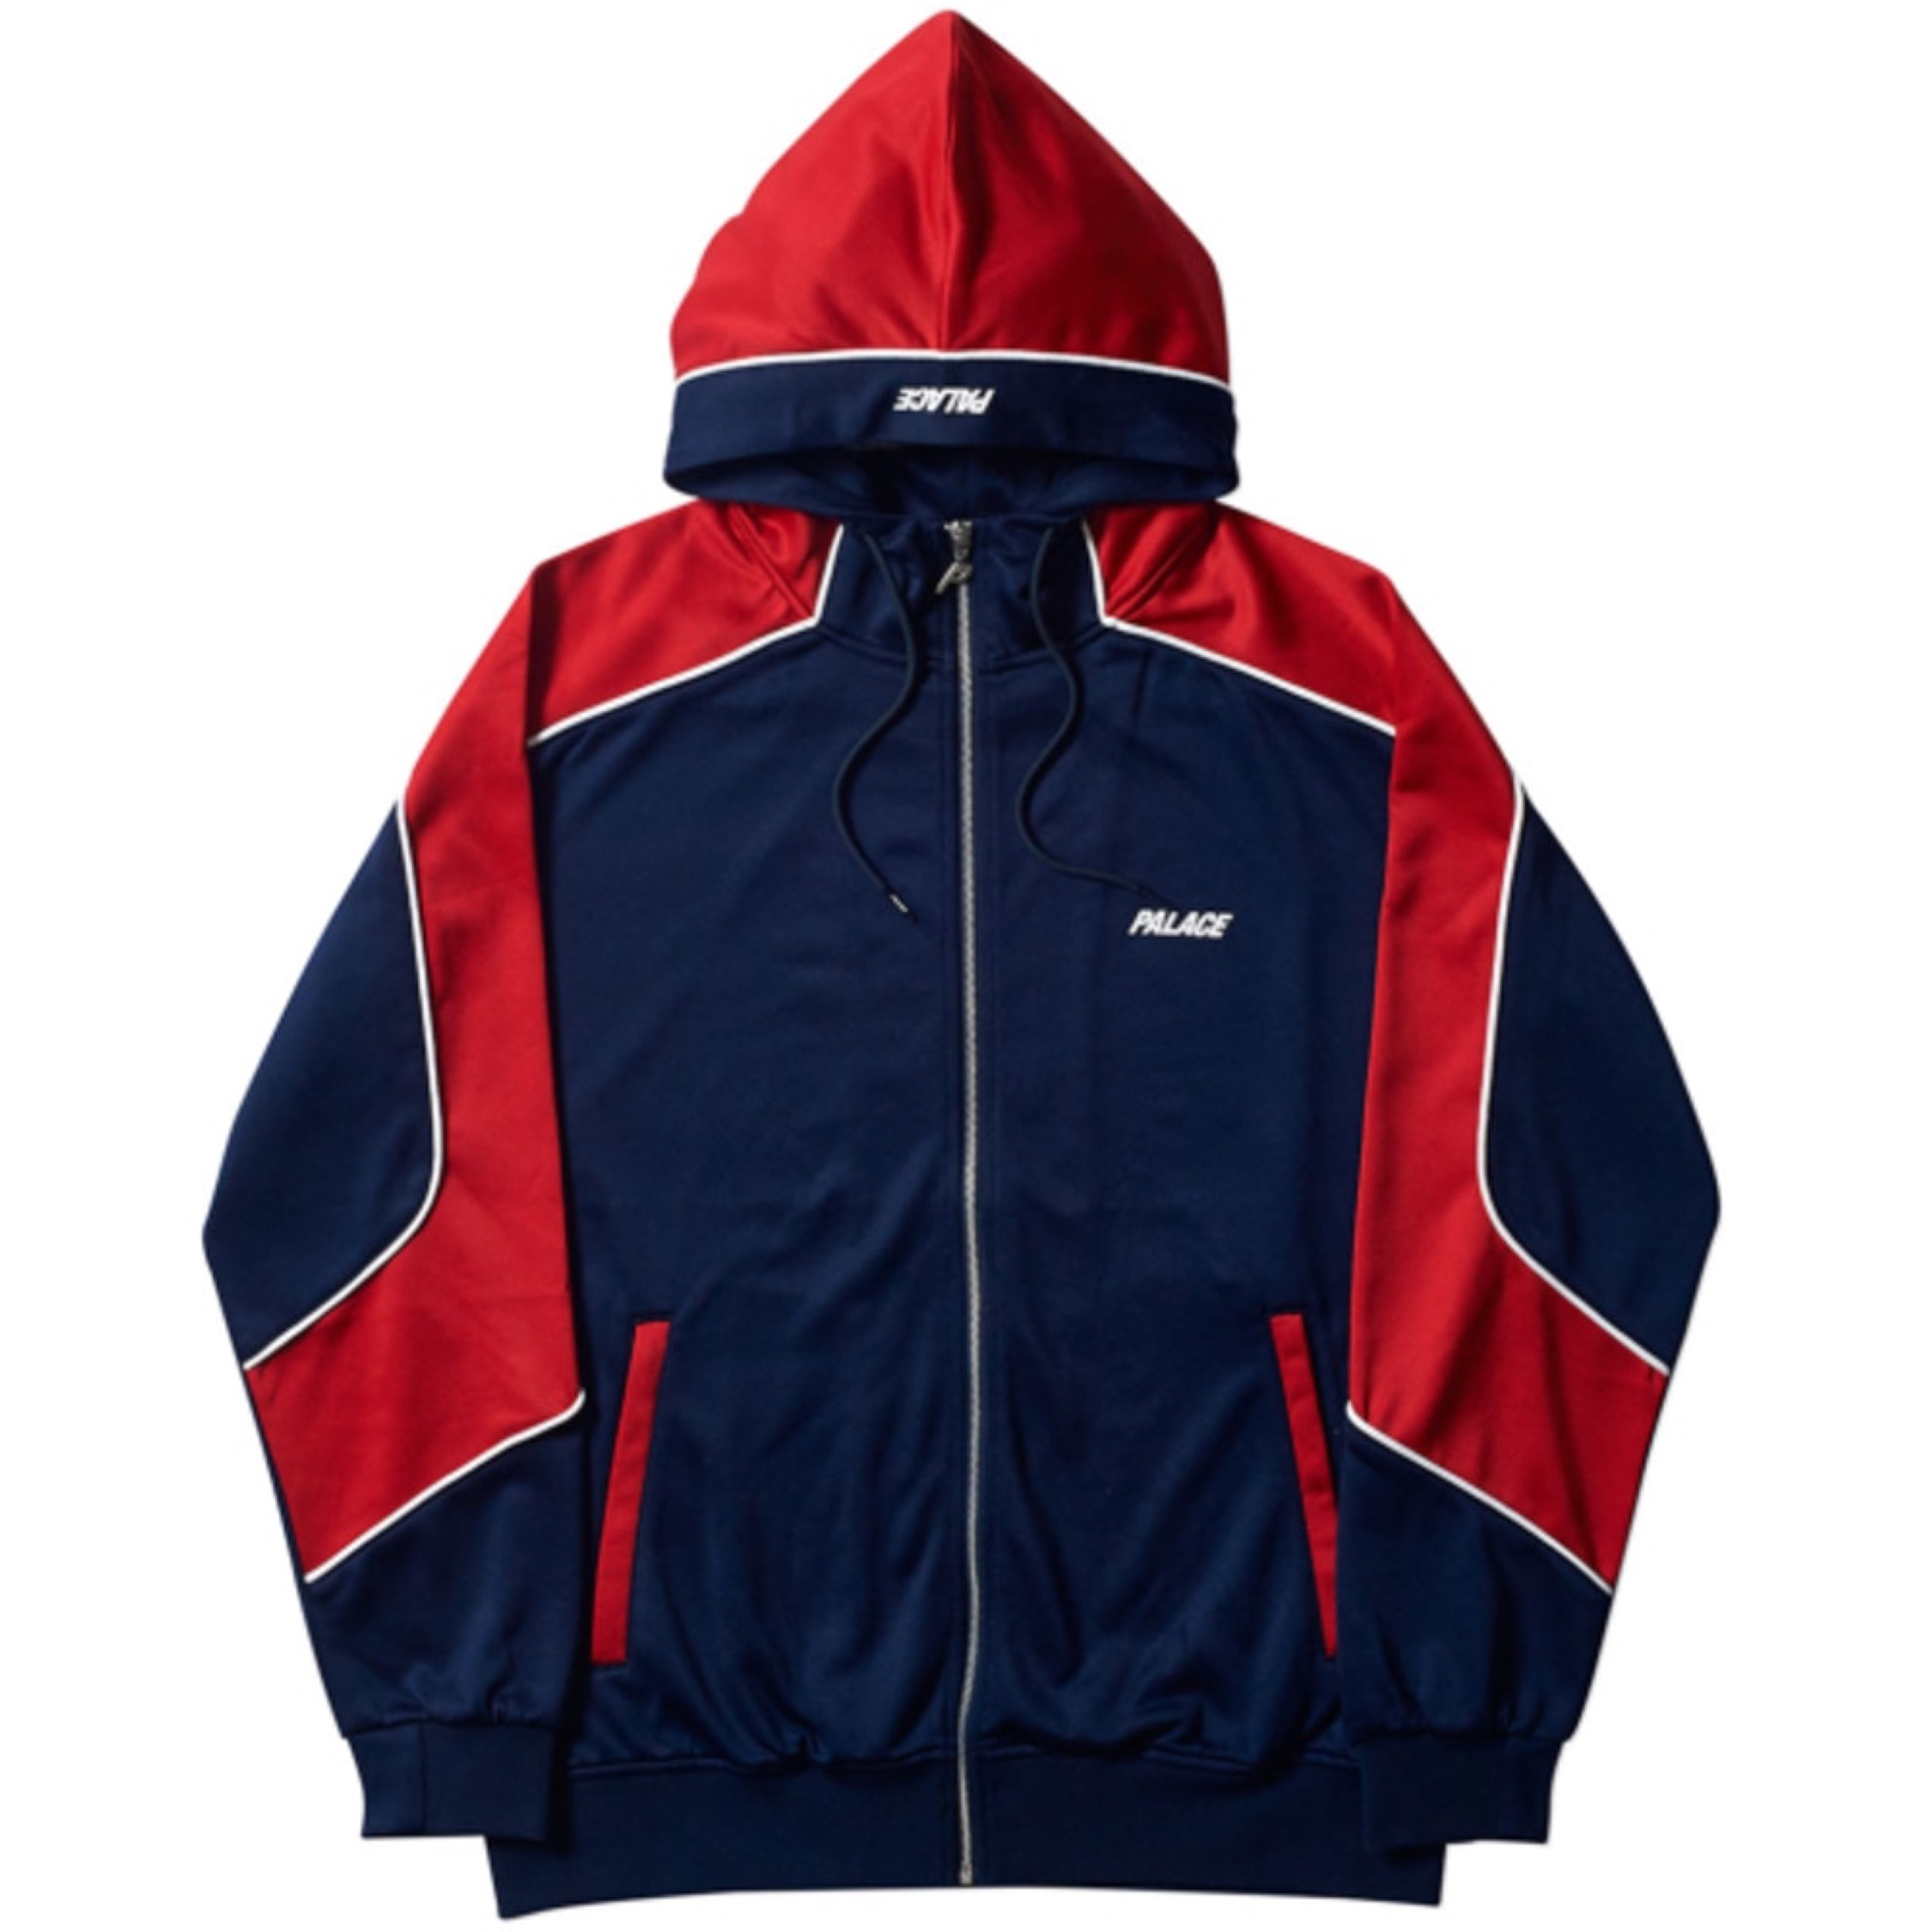 Palace Pipeline Hooded Track Jacket (Navy/Red) Xl